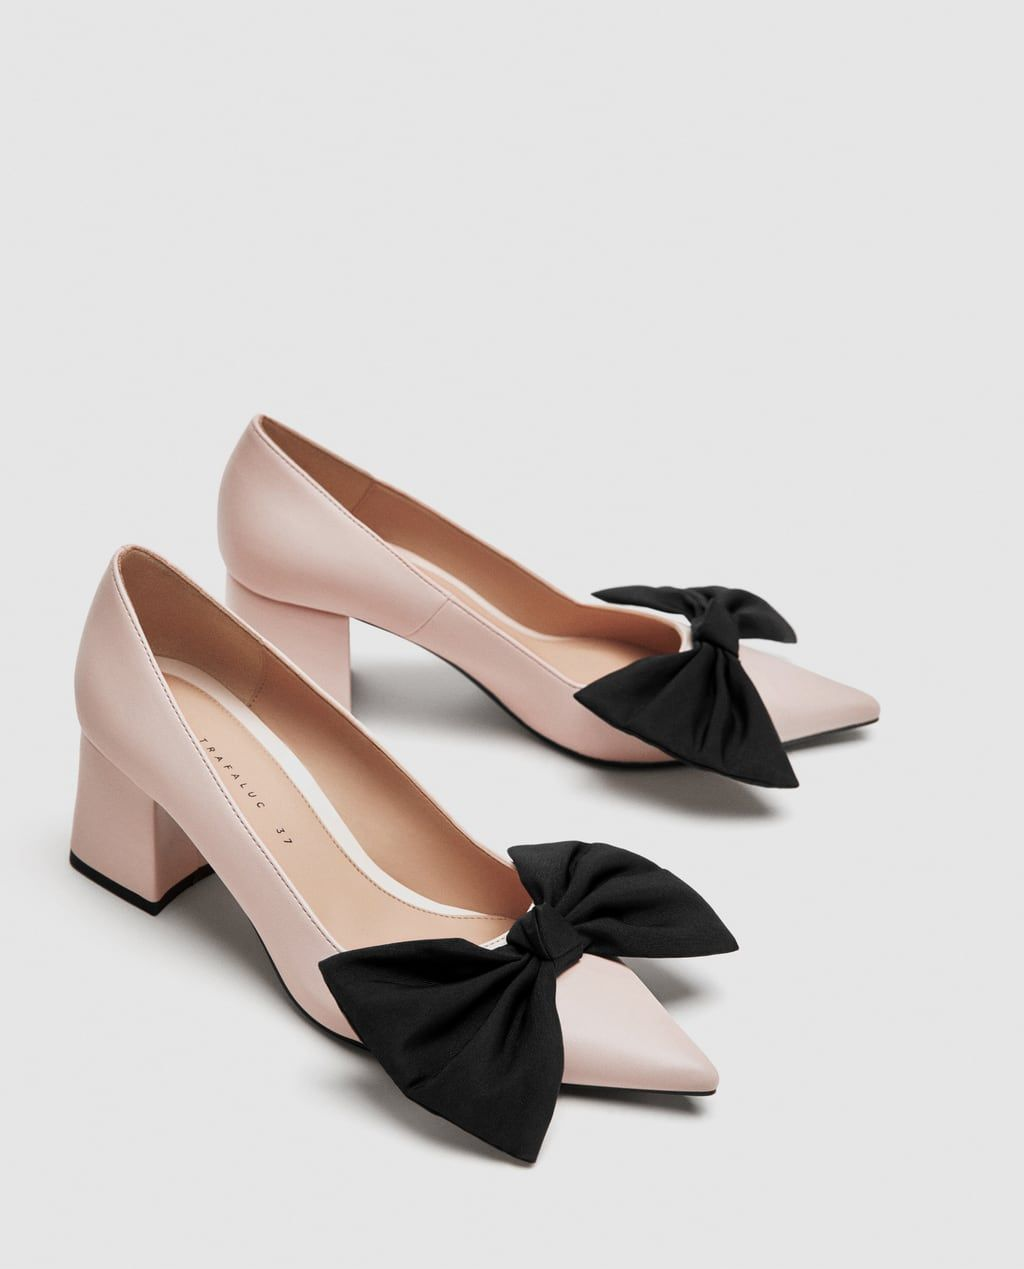 98953f49f78 Image 3 of MEDIUM HEEL COURT SHOES WITH BOW from Zara